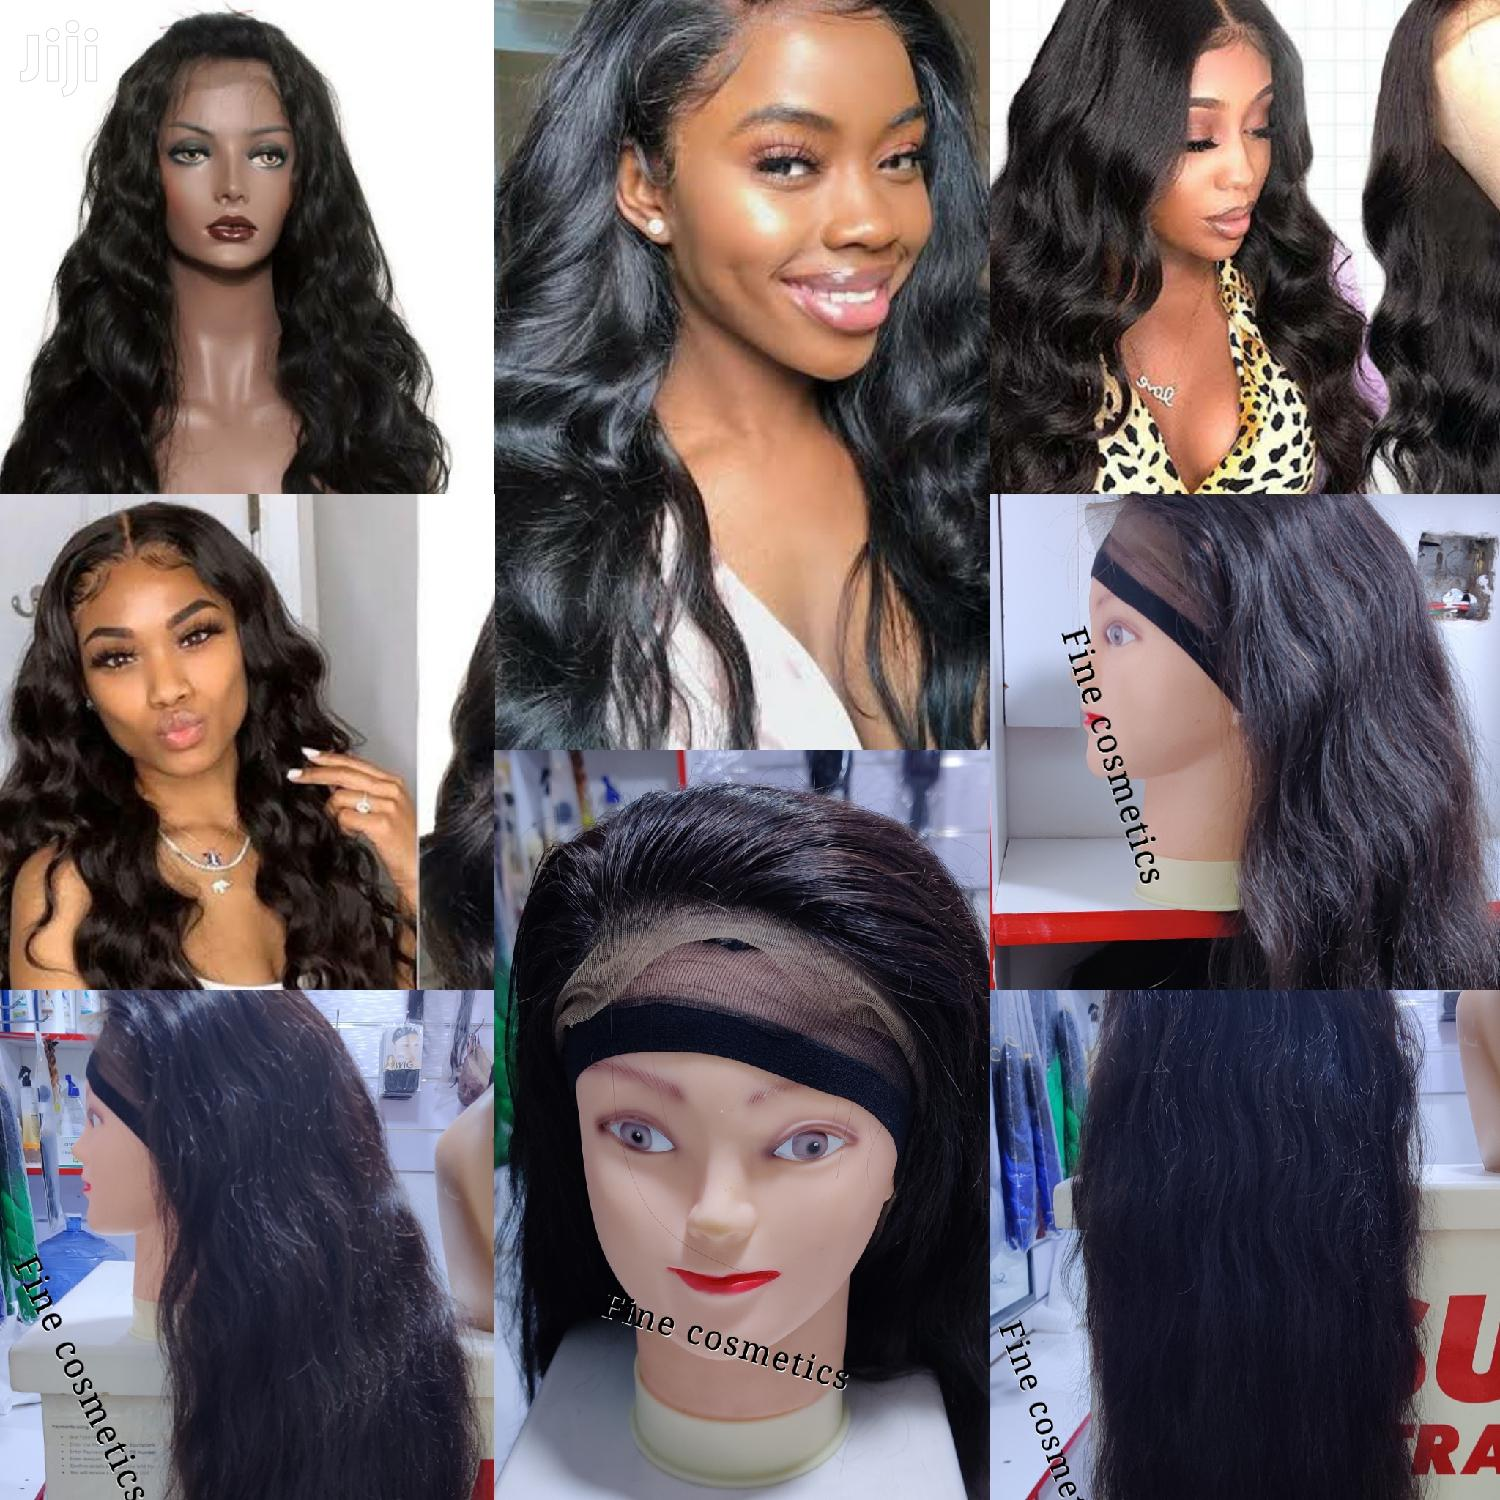 Original 360 Body Wave Lace Wig Size 30 100% Human Hair.